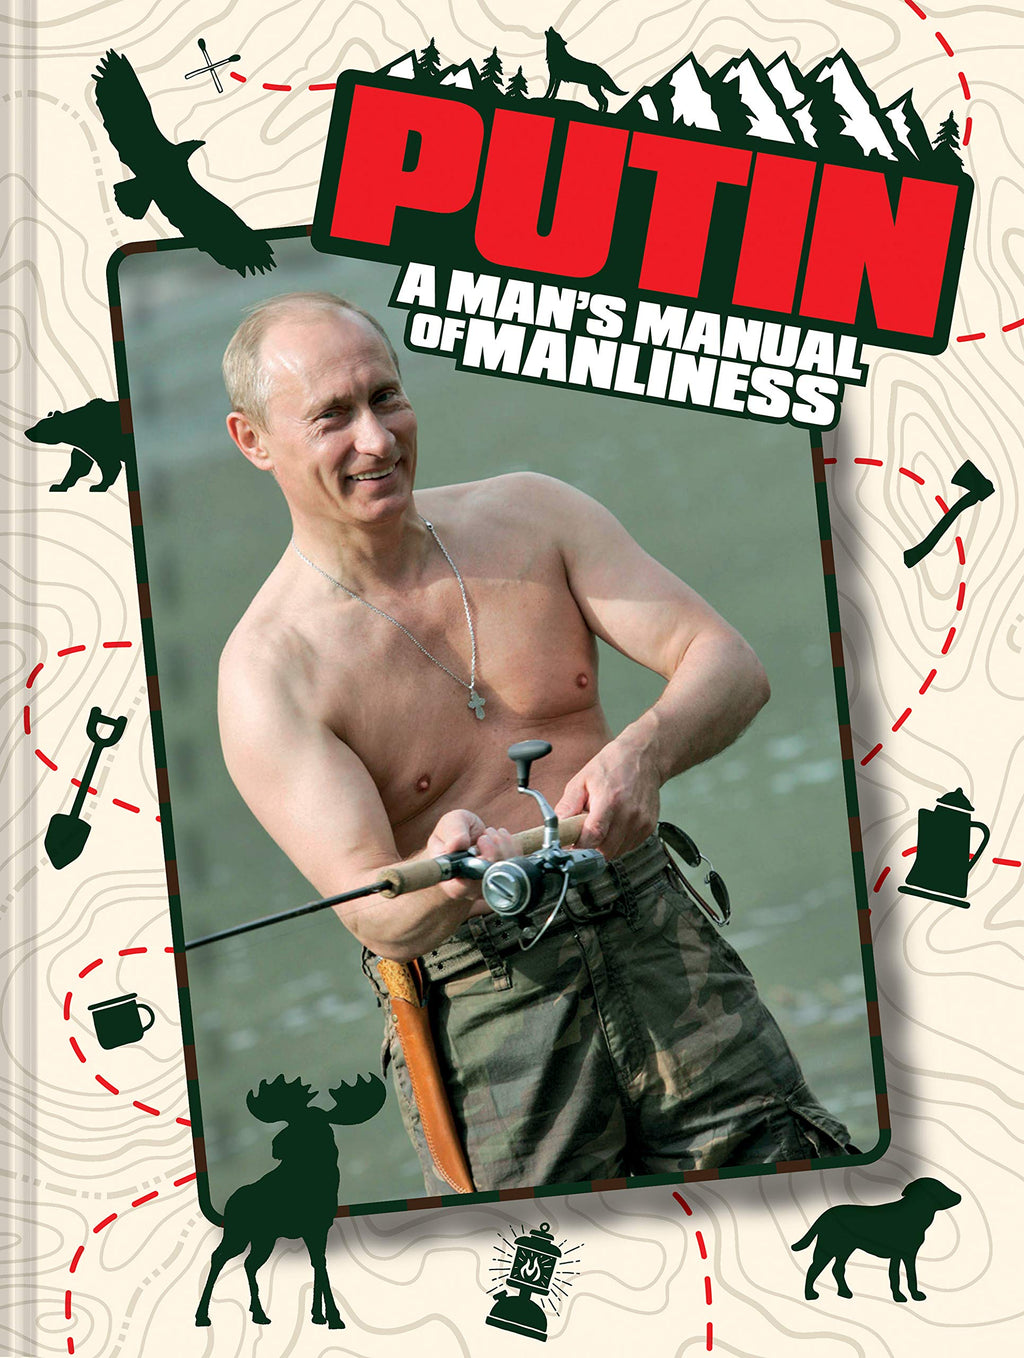 Putin: A Man's Manual of Manliness - Wanderlustre